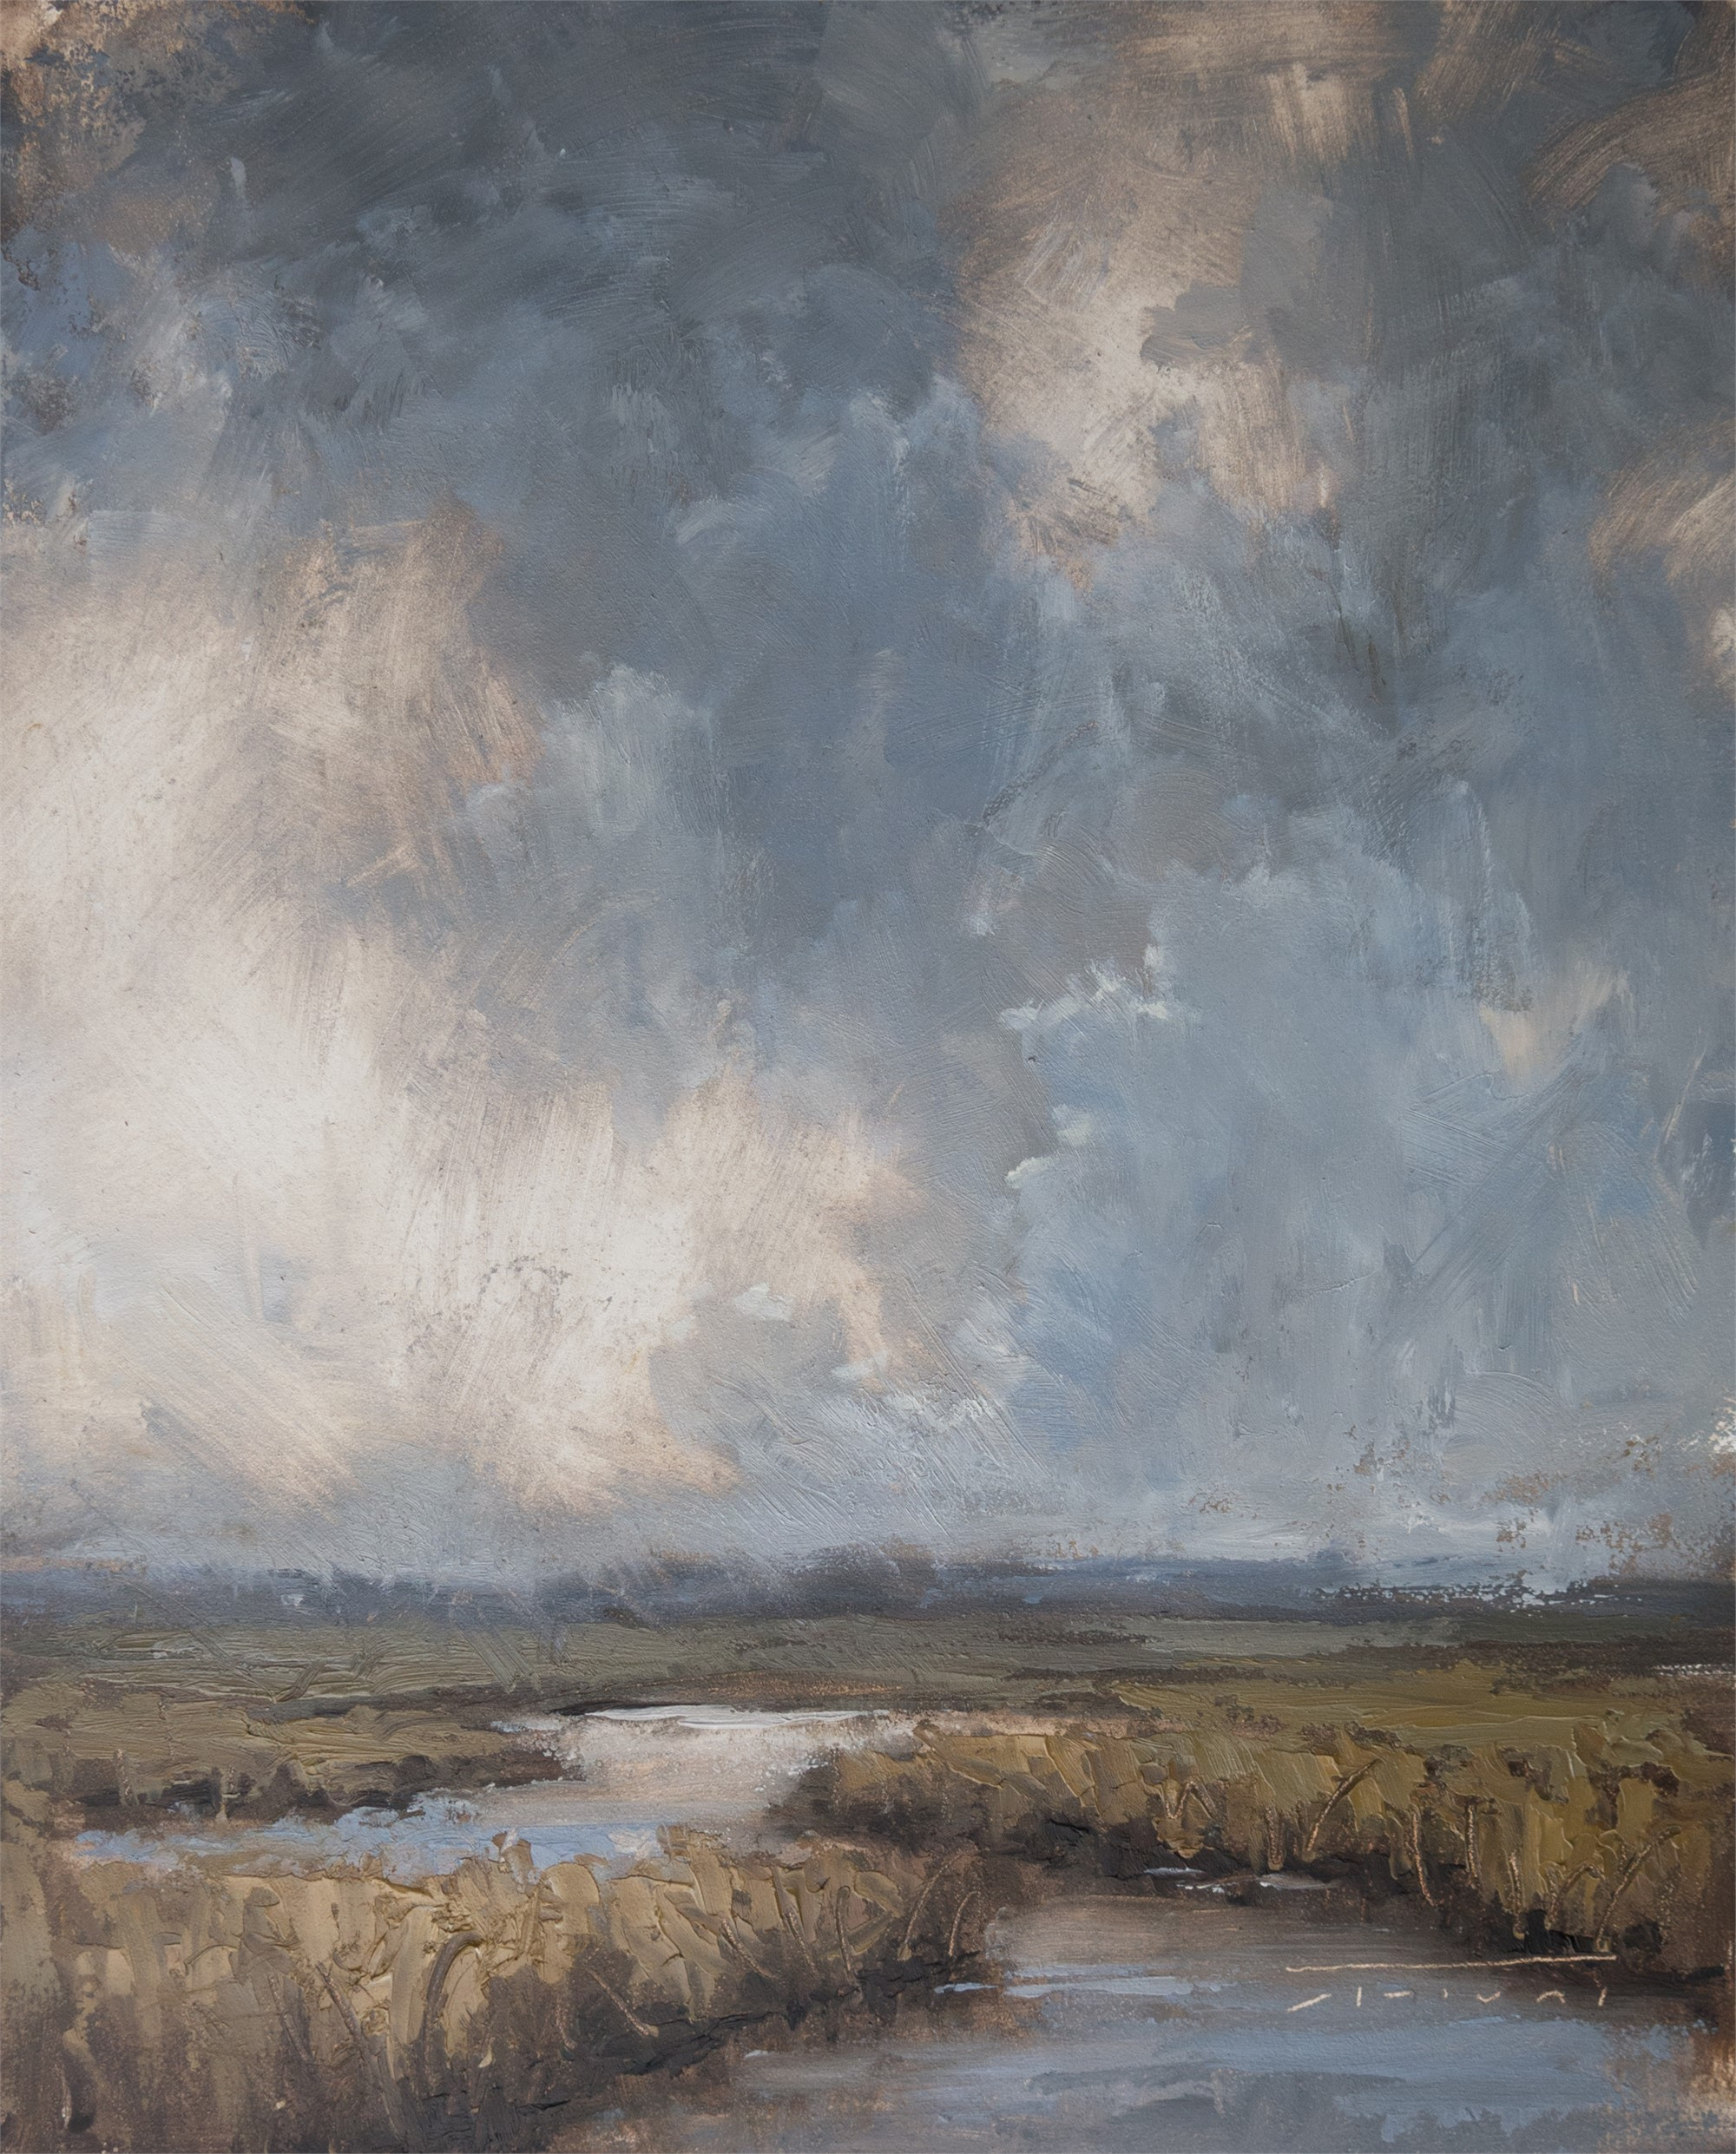 Storm Clouds by Jane Hunt